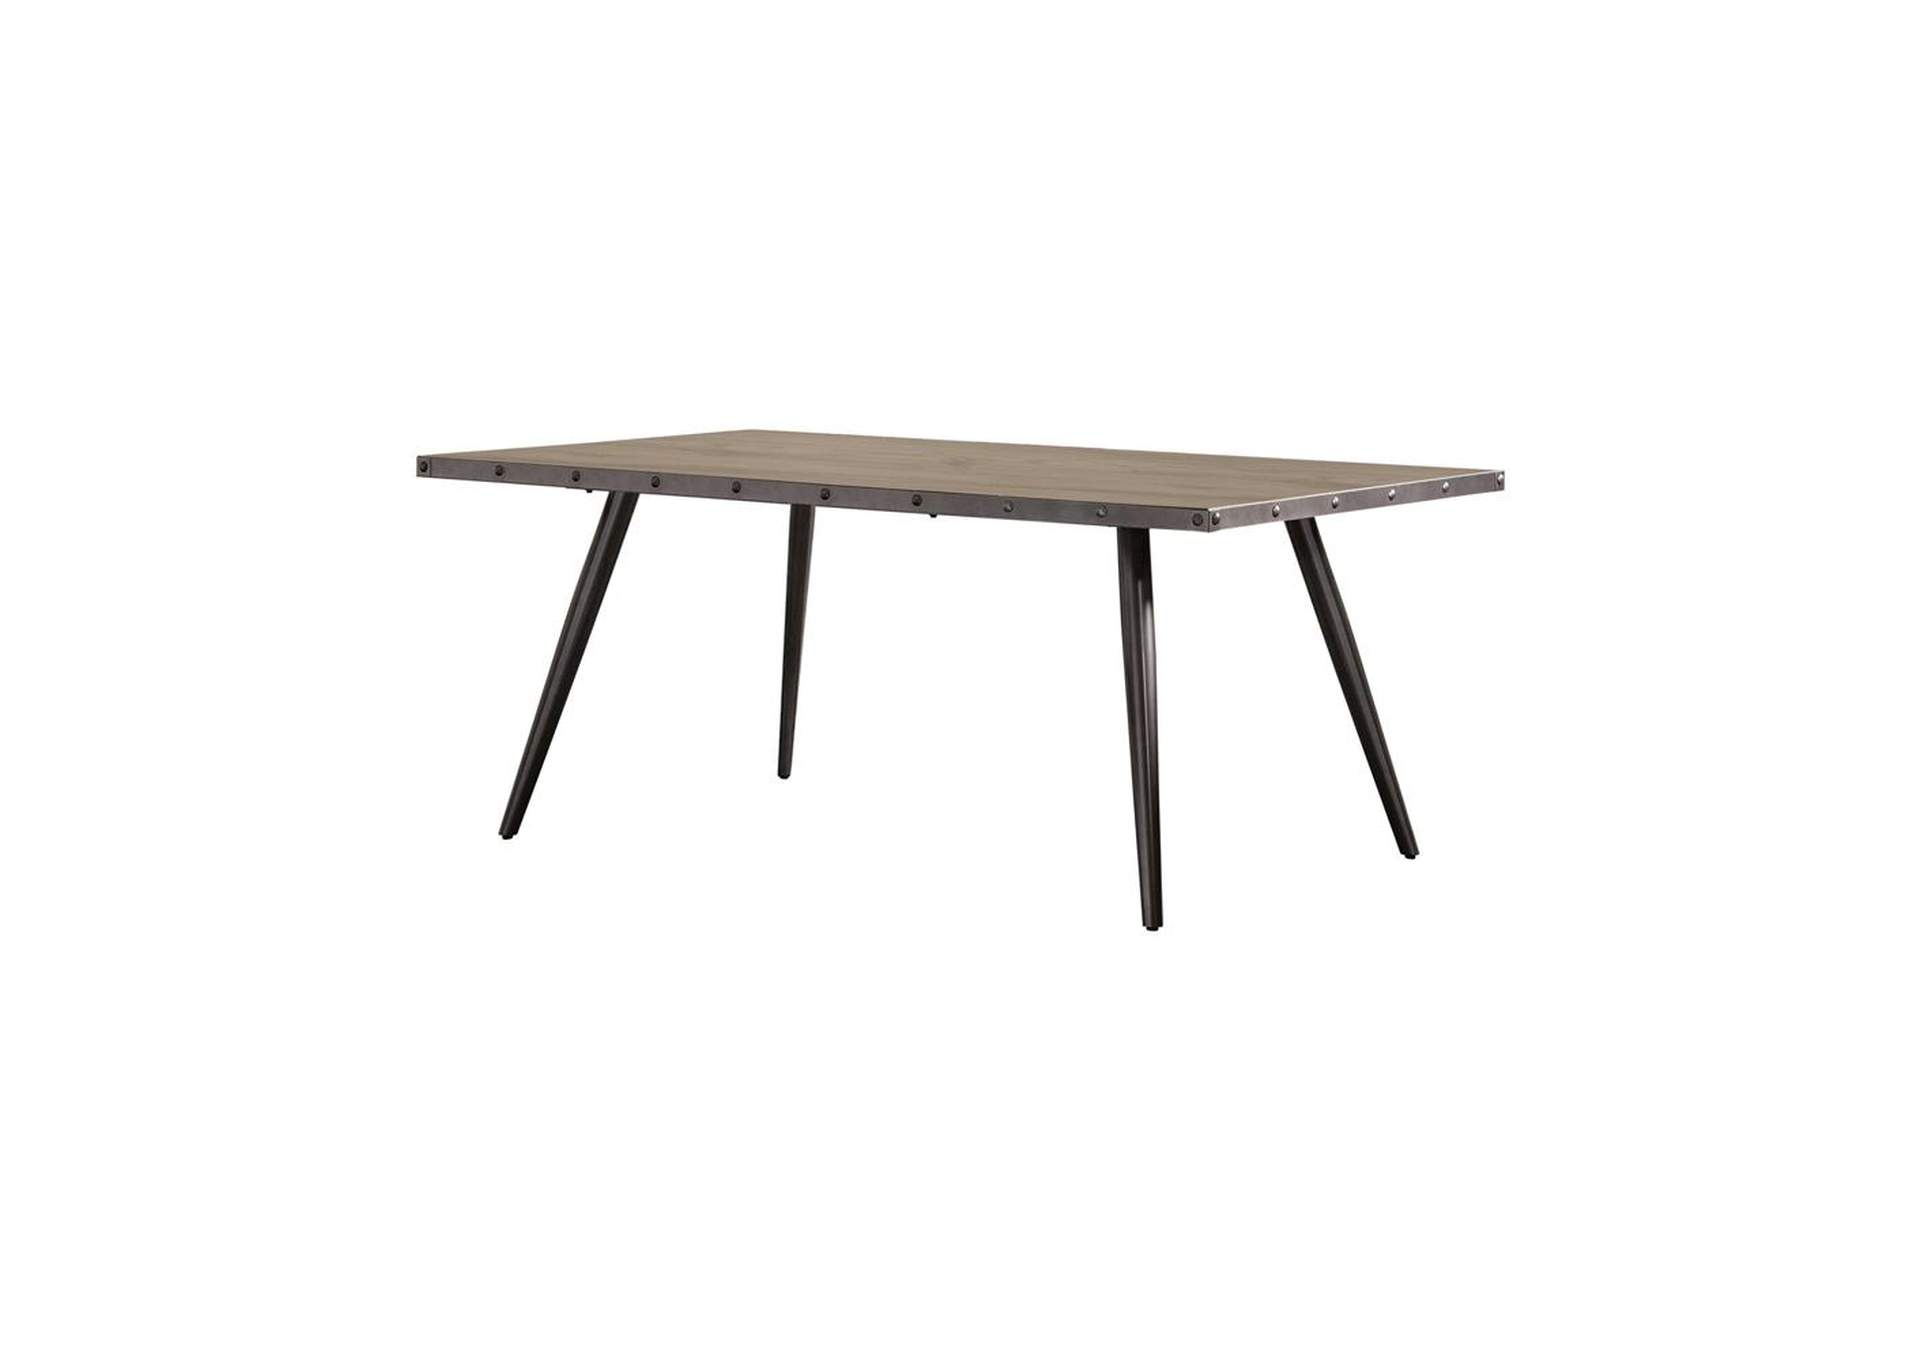 Donkey Brown Levitt Mid-Century Modern Dining Table,Coaster Furniture